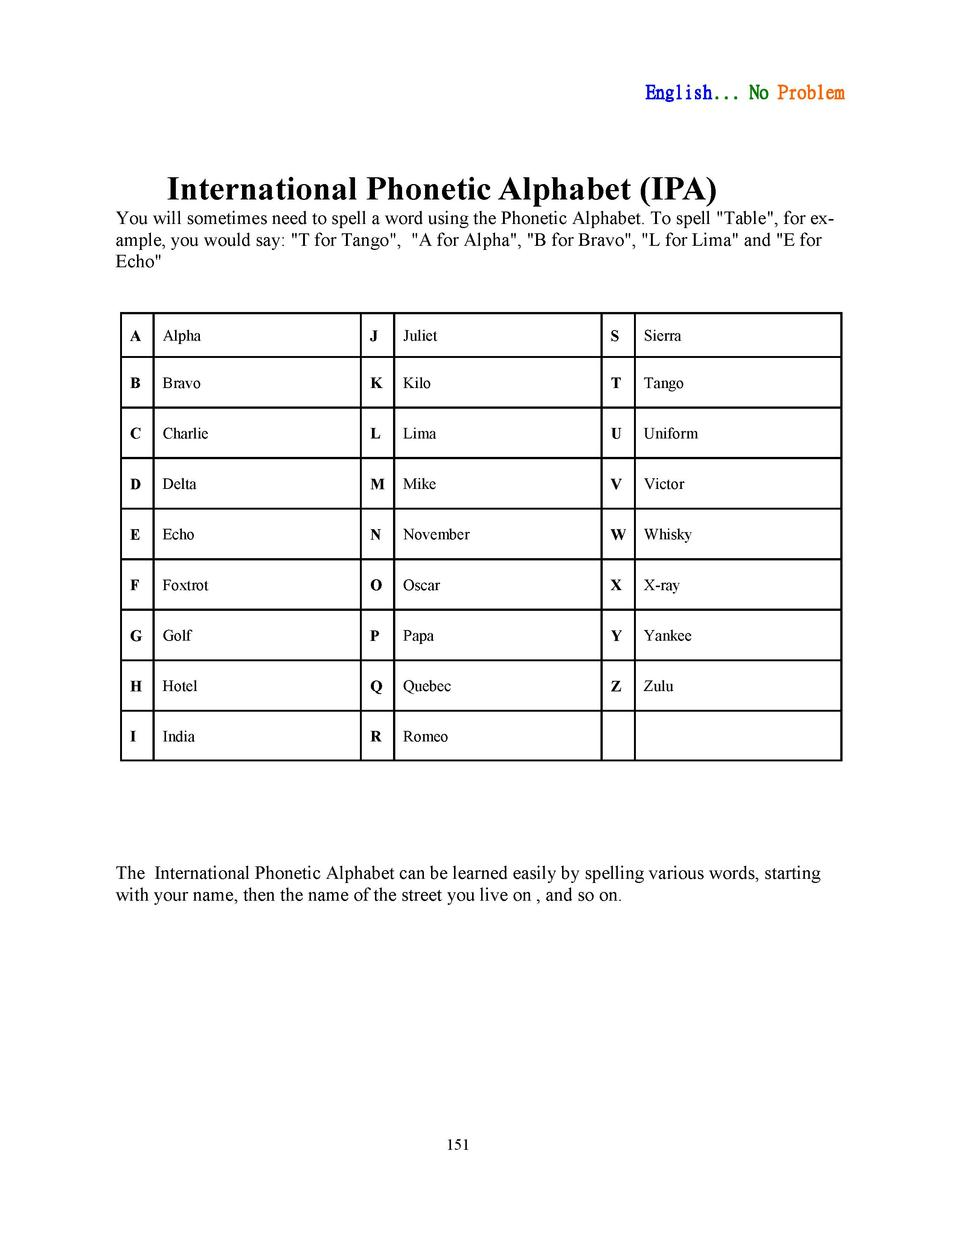 English... No Problem  International Phonetic Alphabet  IPA  You will sometimes need to spell a word using the Phonetic Al...